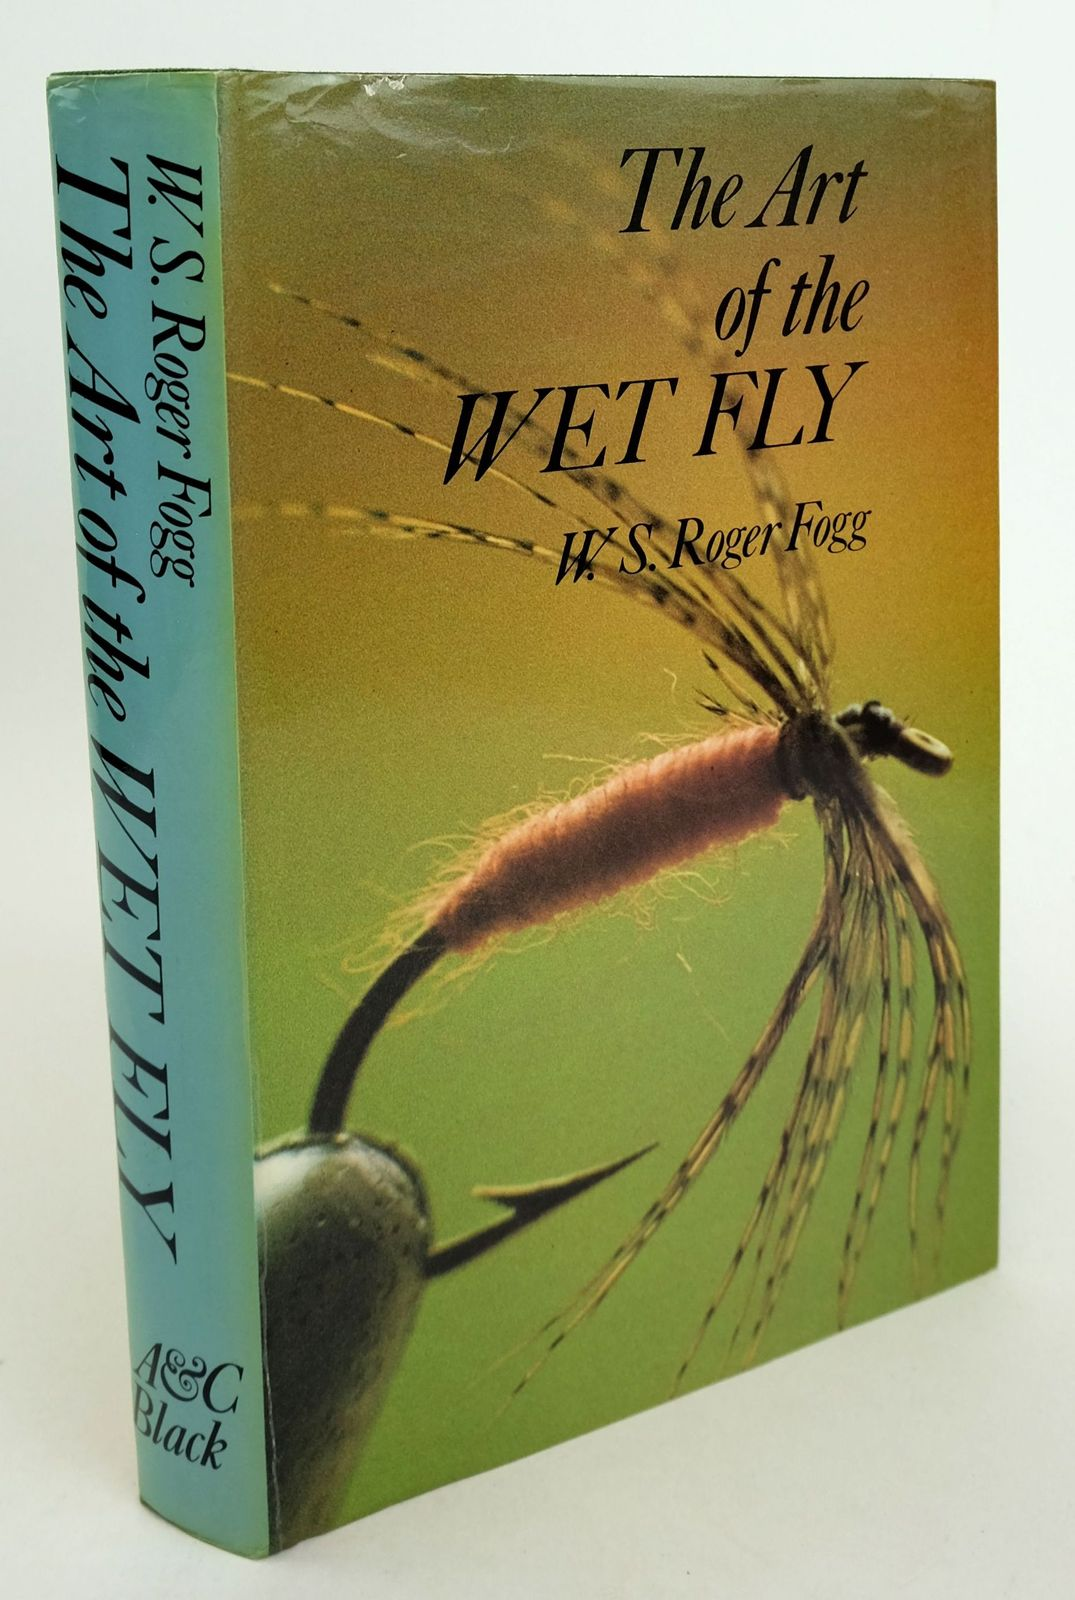 Photo of THE ART OF THE WET FLY written by Fogg, W.S. Roger illustrated by Fogg, W.S. Roger published by Adam & Charles Black (STOCK CODE: 1819199)  for sale by Stella & Rose's Books